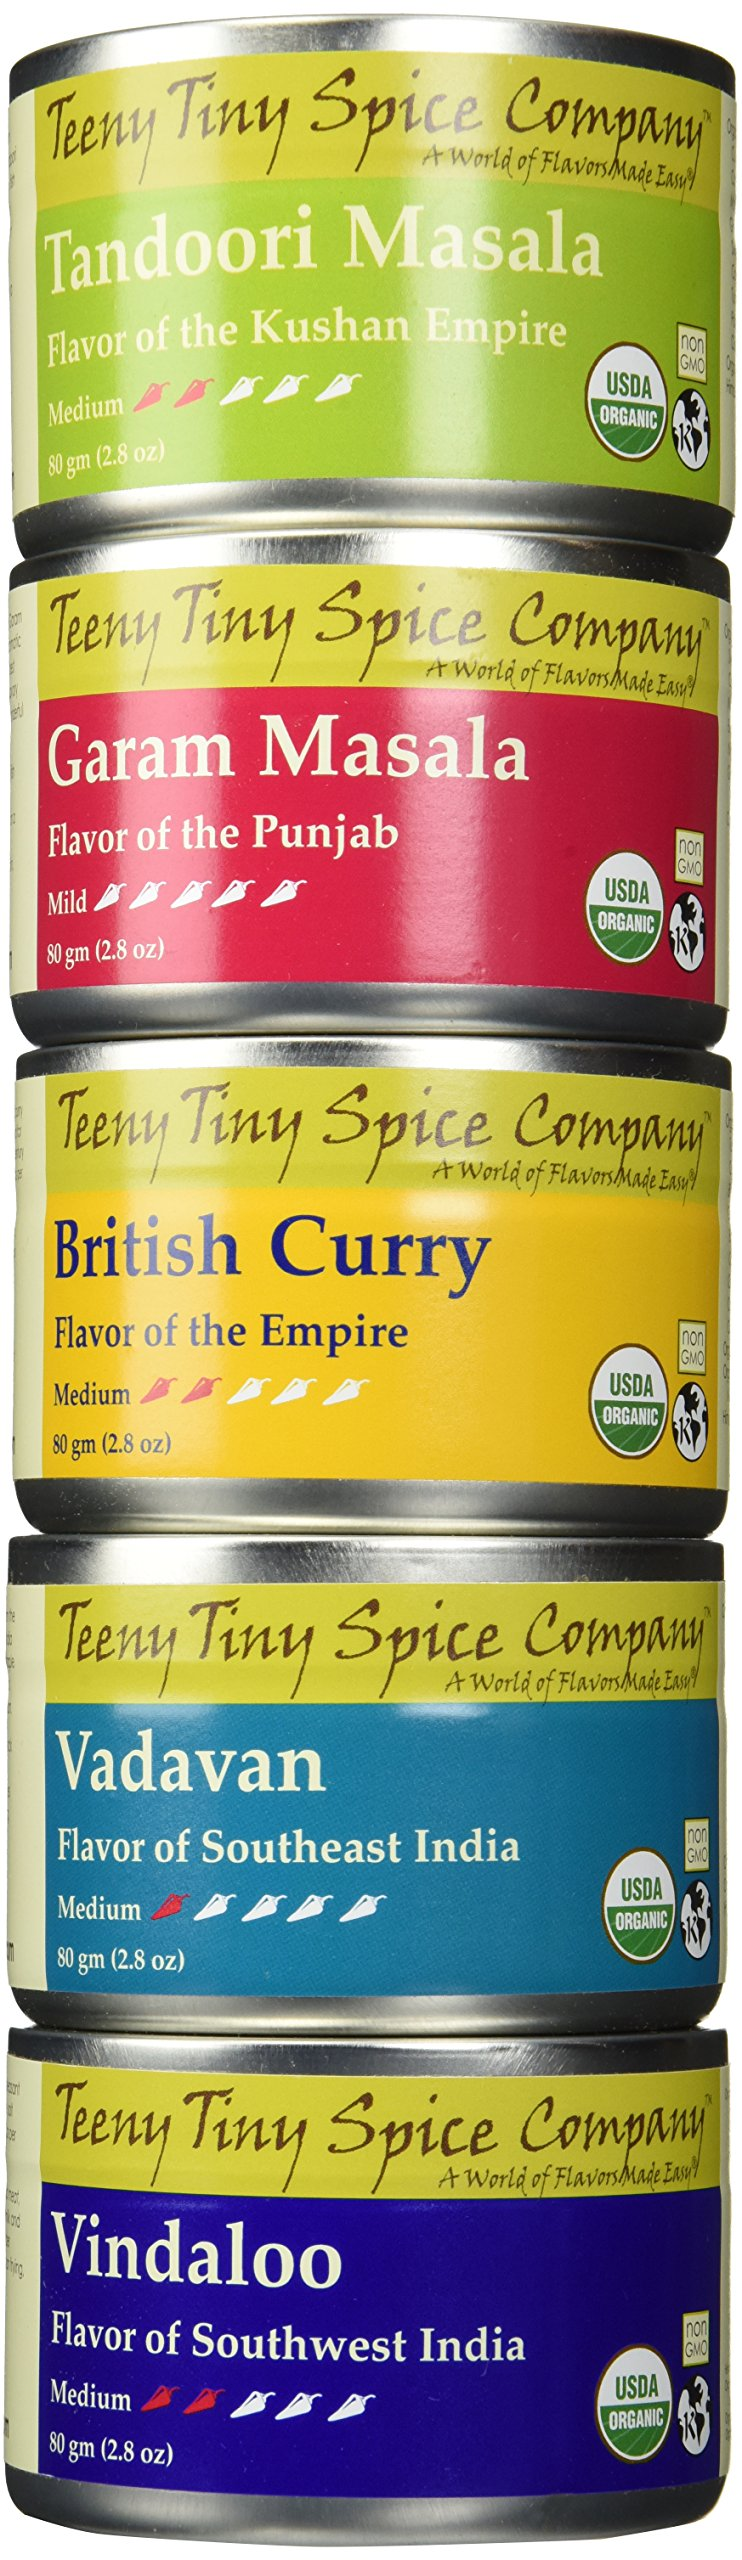 Teeny Tiny Spice Company Organic Indian Spice Blends Variety Pack, Five 2.8 Oz Tins